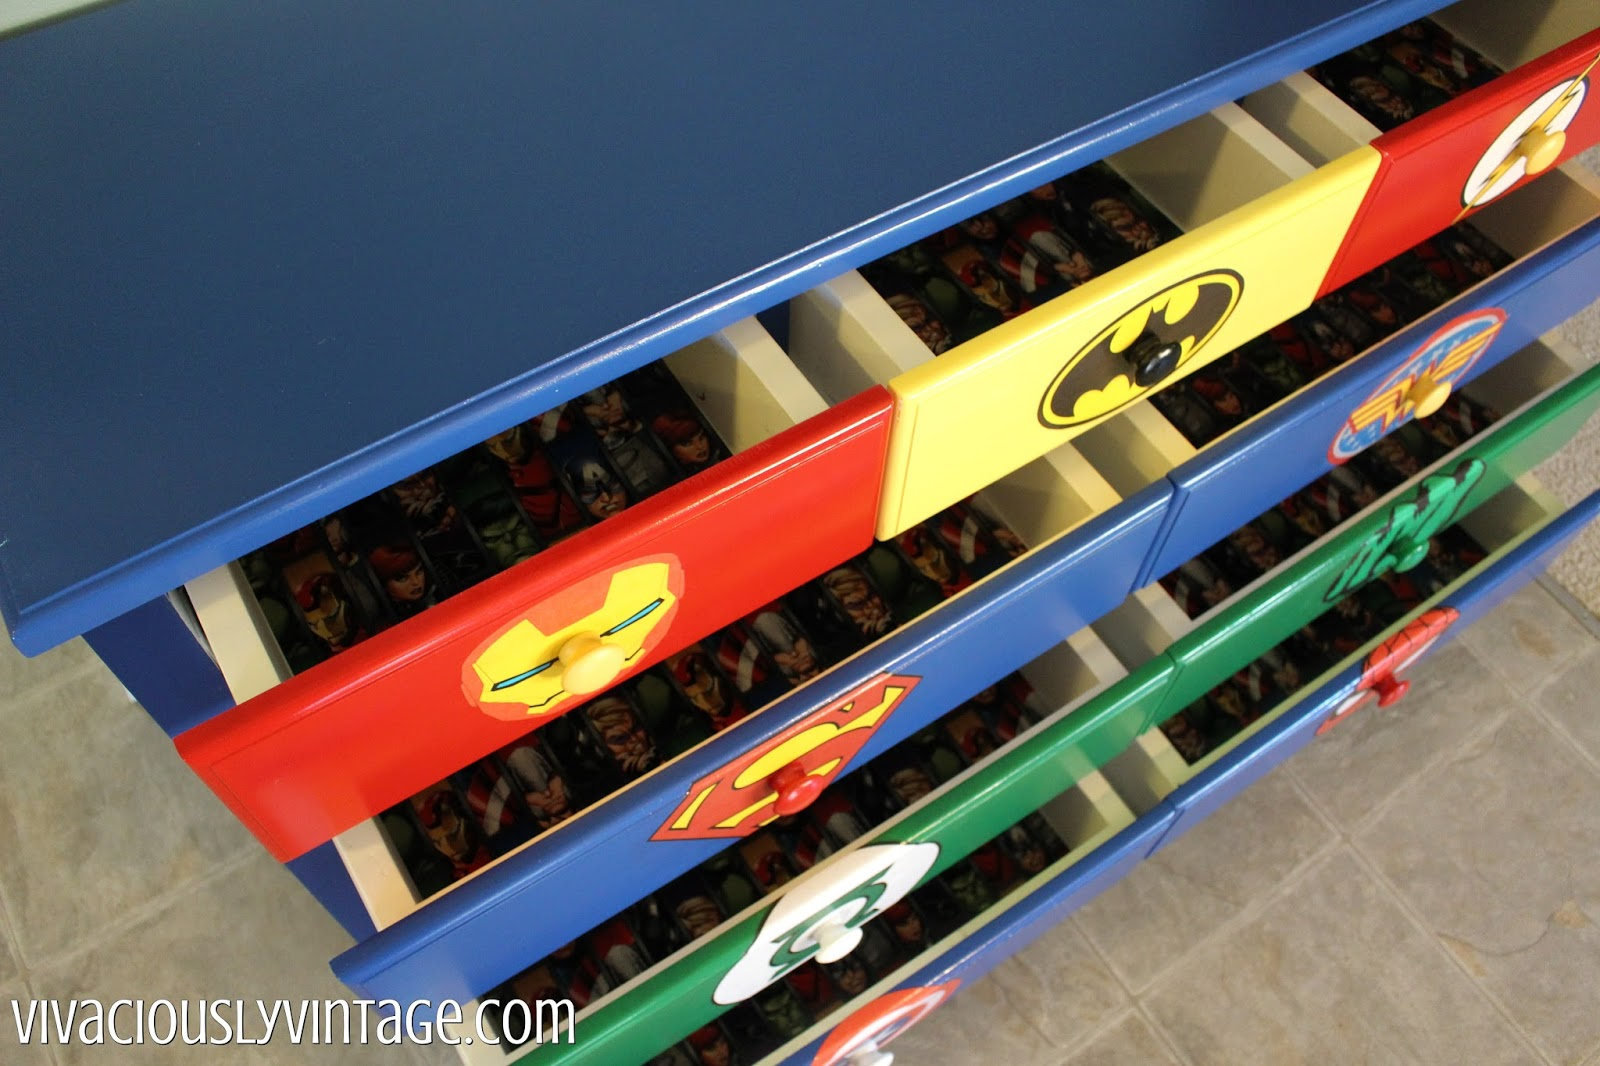 diy superhero dresser